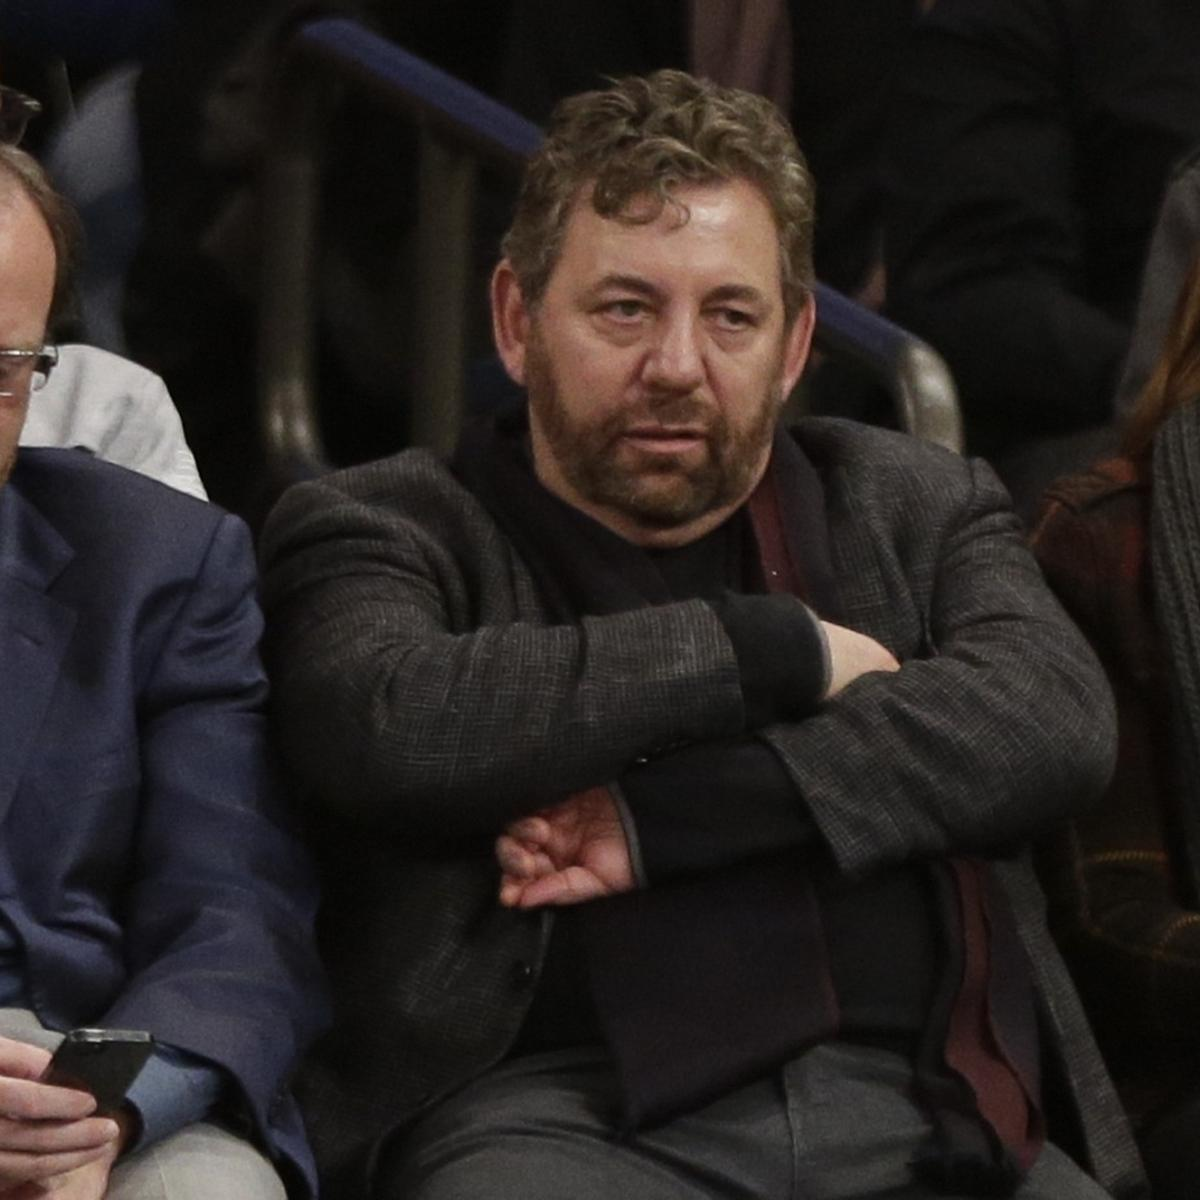 James Dolan Reportedly Frustrated With Knicks Struggles Bleacher